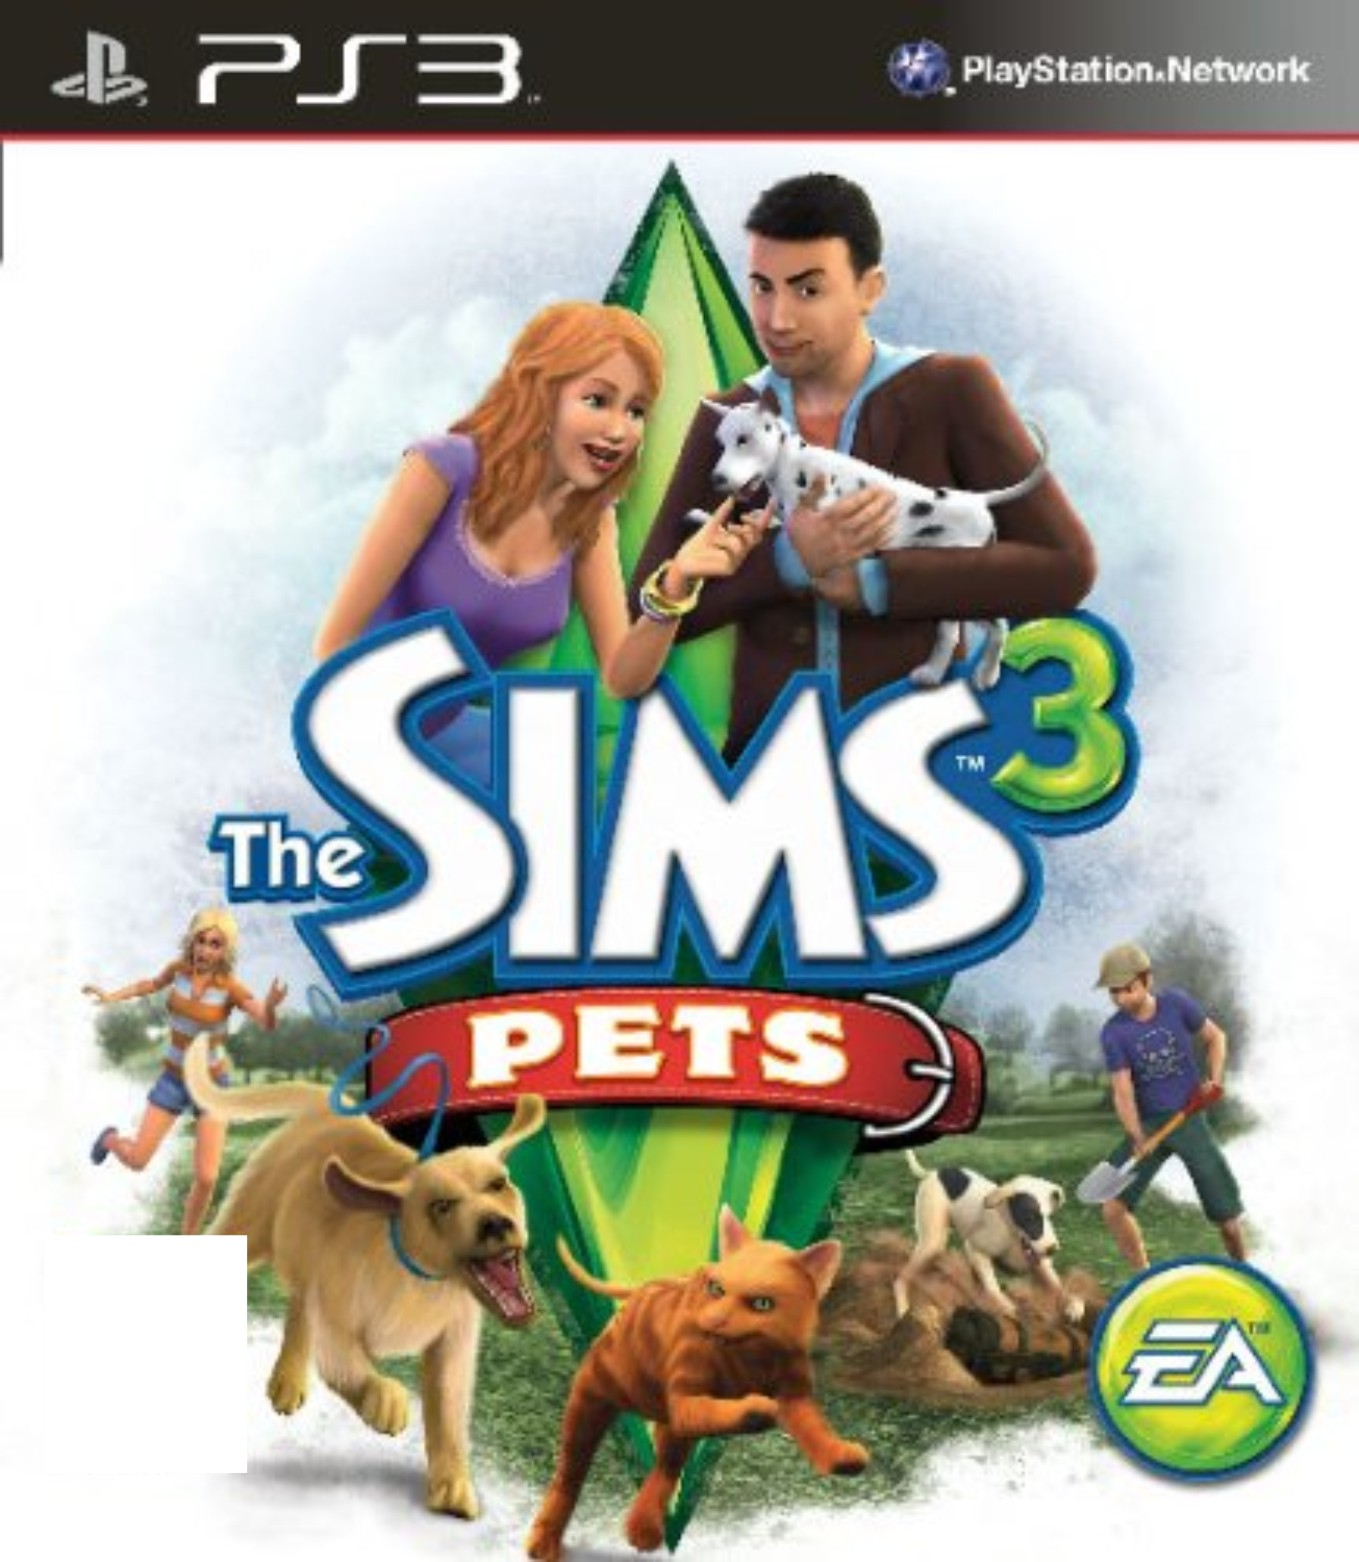 The Sims 3 Pets | CFW 3.55 | PS3 ISO Games | US 4 PLAYSTATION